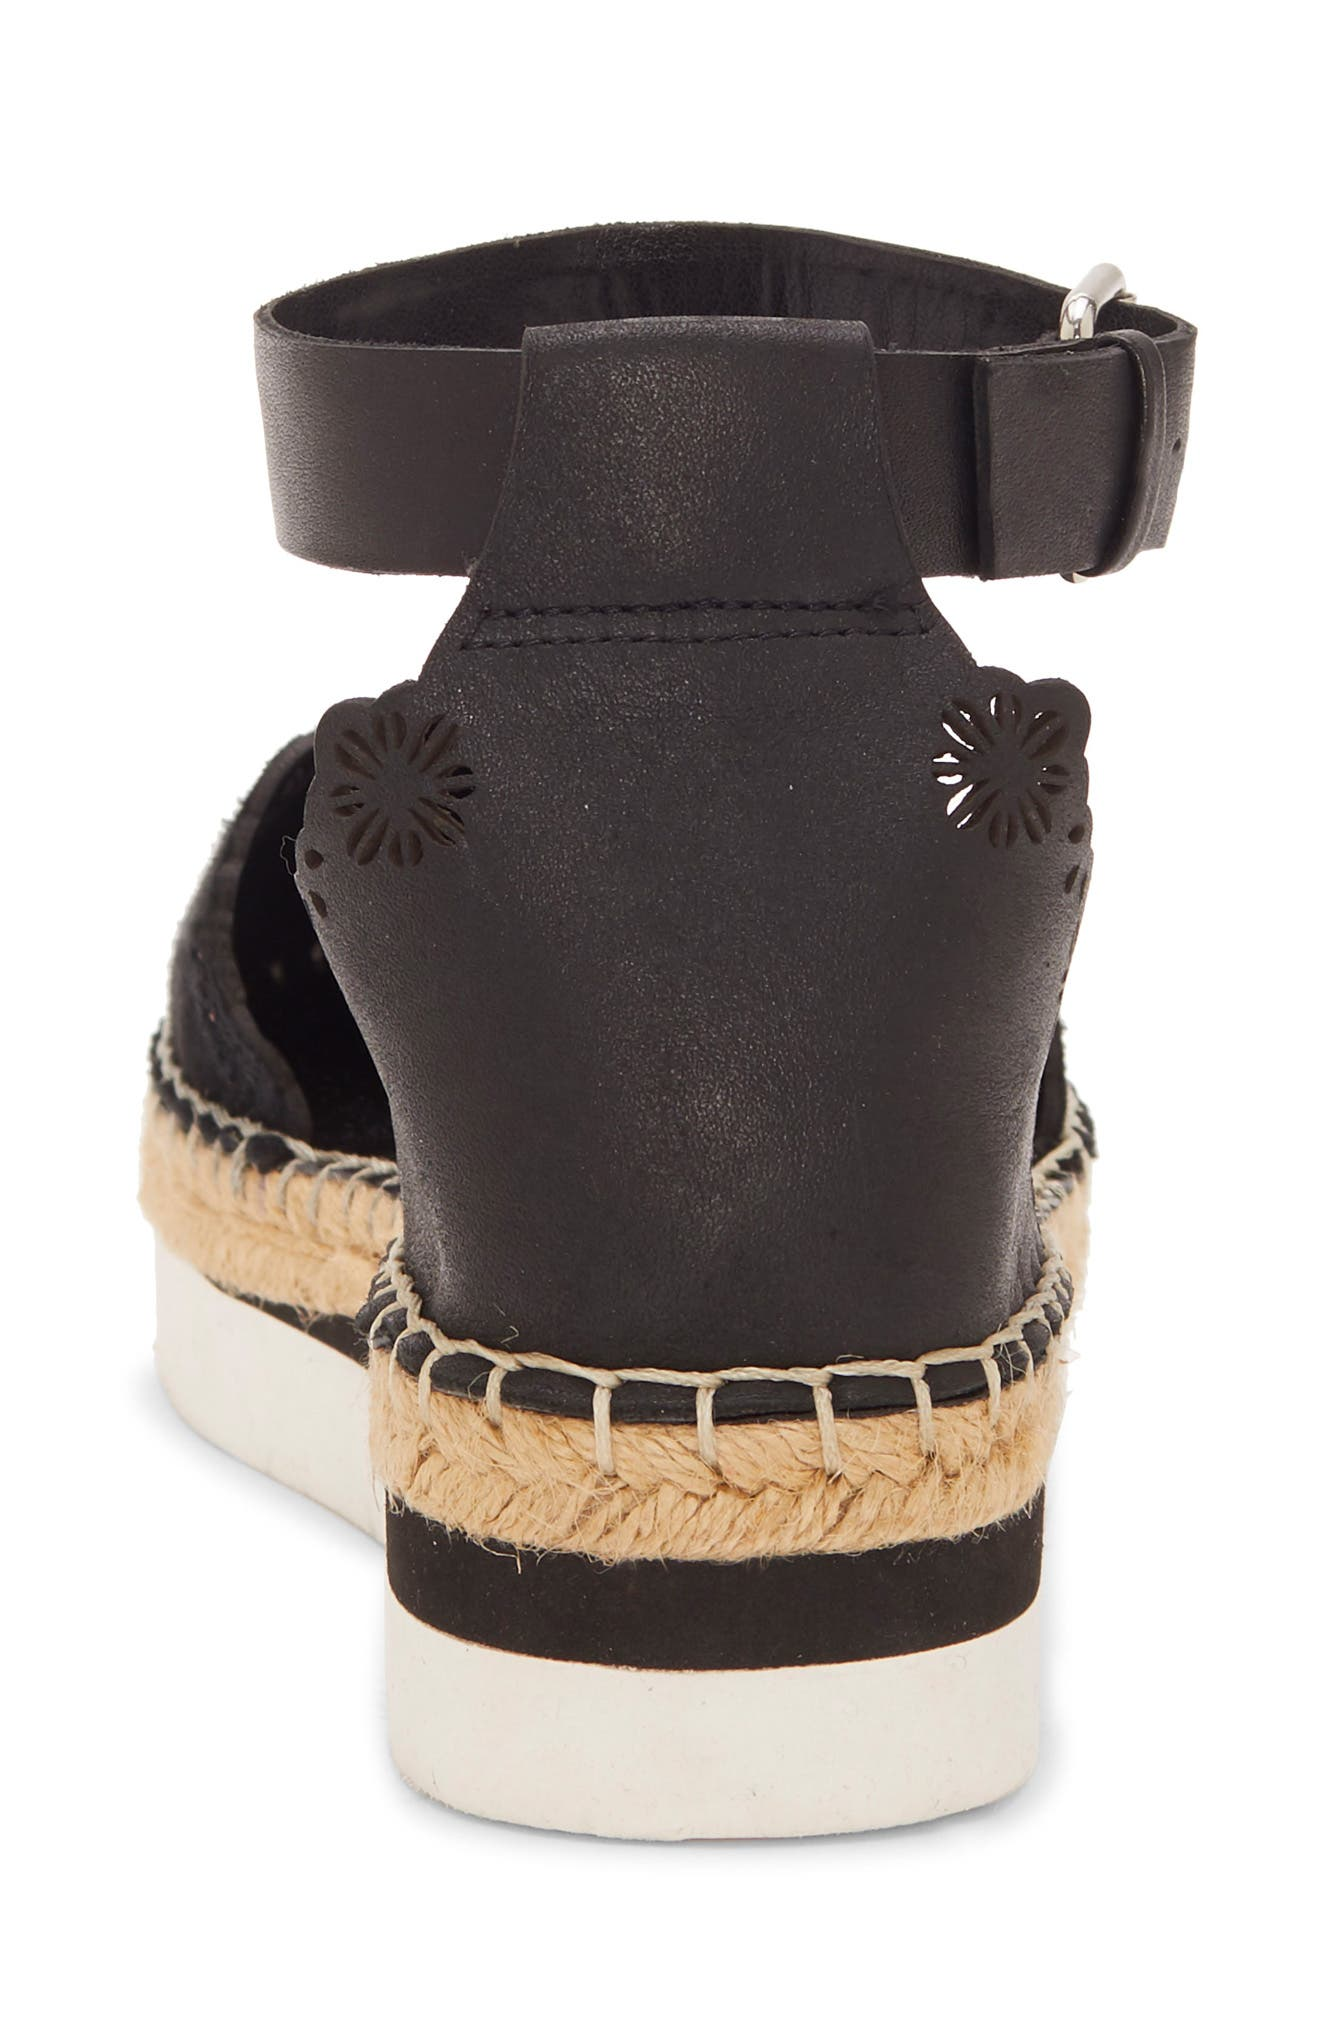 VINCE CAMUTO, Breshan Ankle Strap Espadrille Wedge, Alternate thumbnail 7, color, BLACK SUEDE